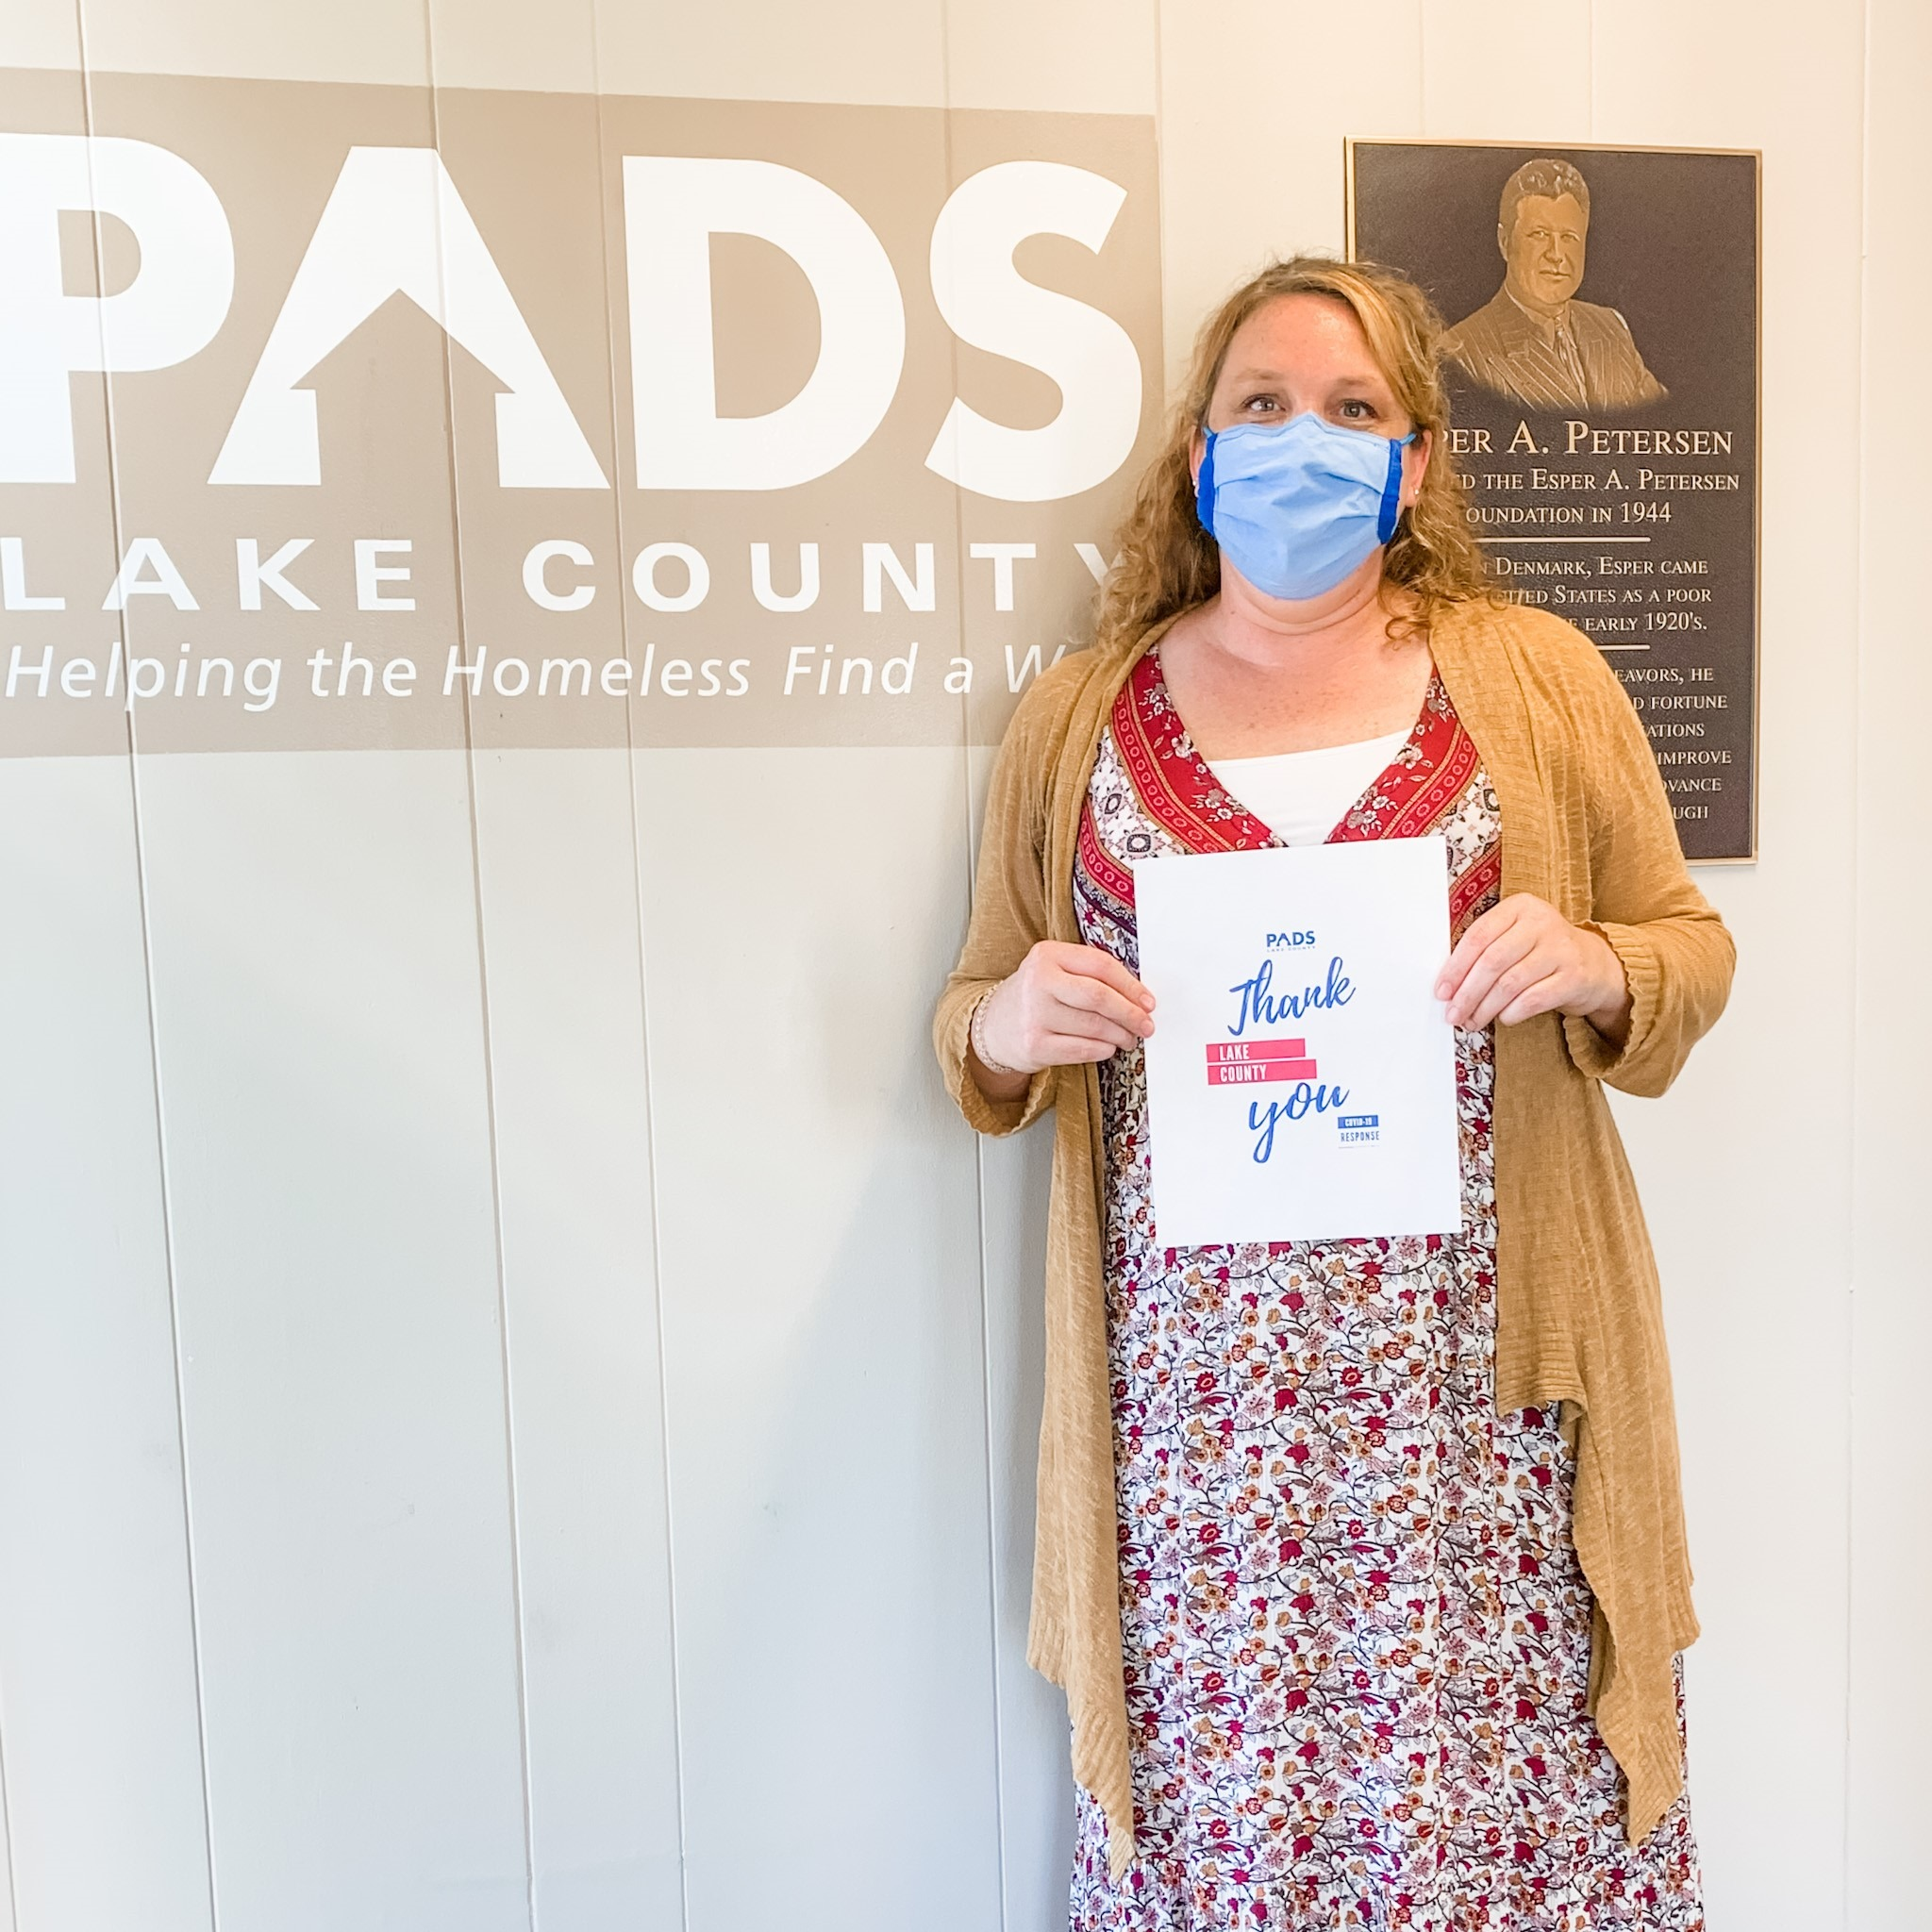 Volunteers in mask stands next to PADS Lake County sign